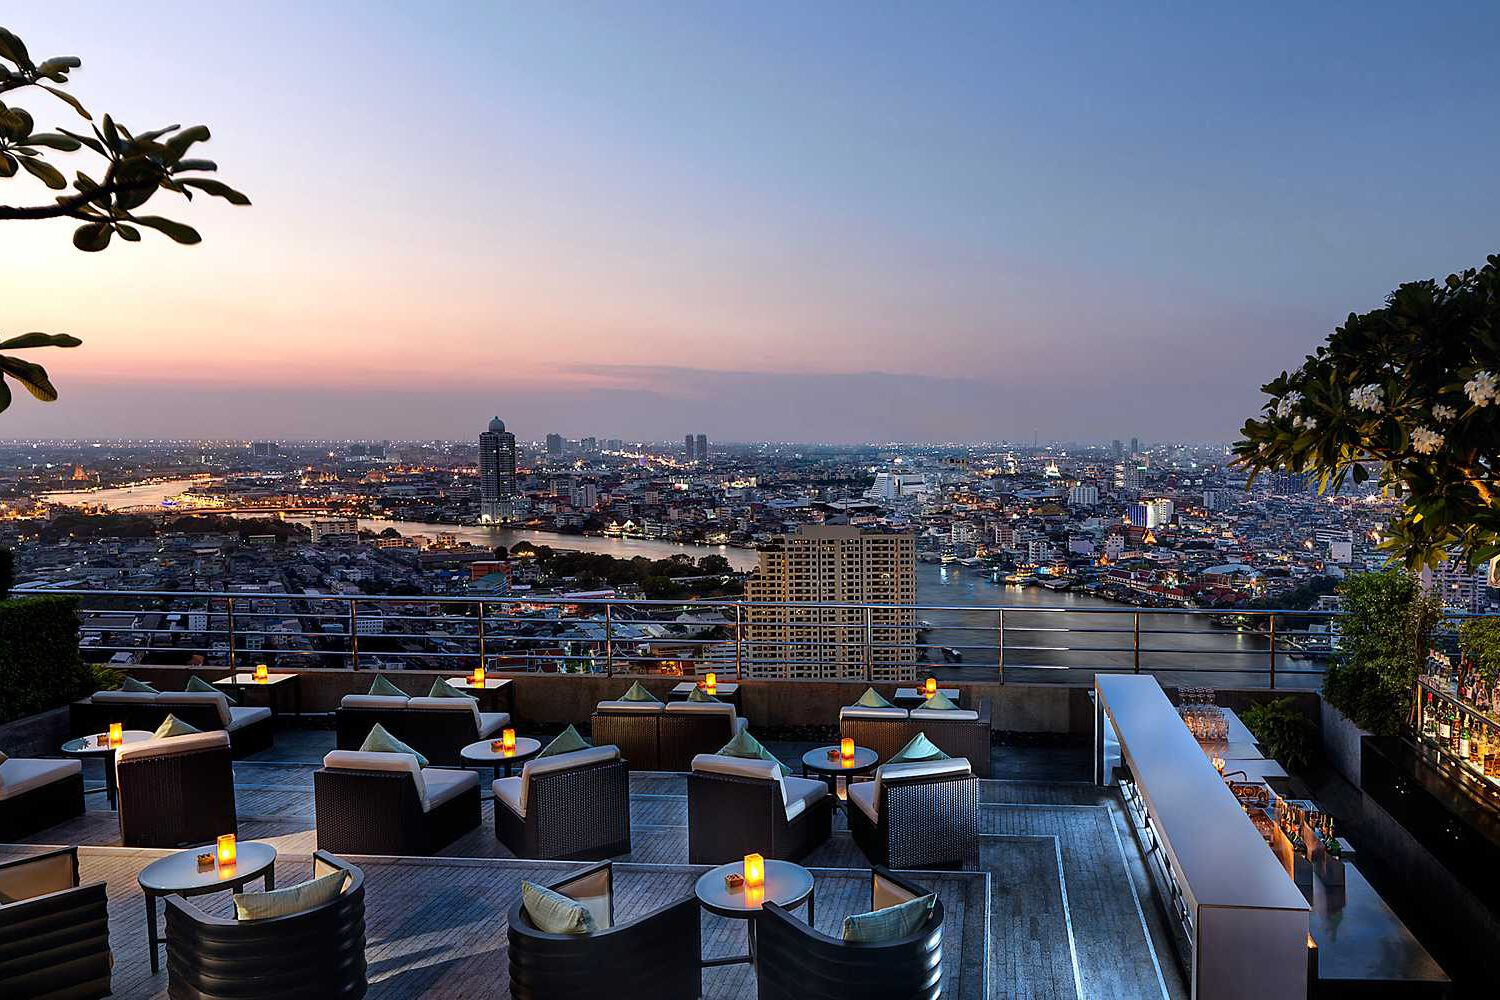 Millennium Hotel. Three Sixty Lounge, sky bar with river view